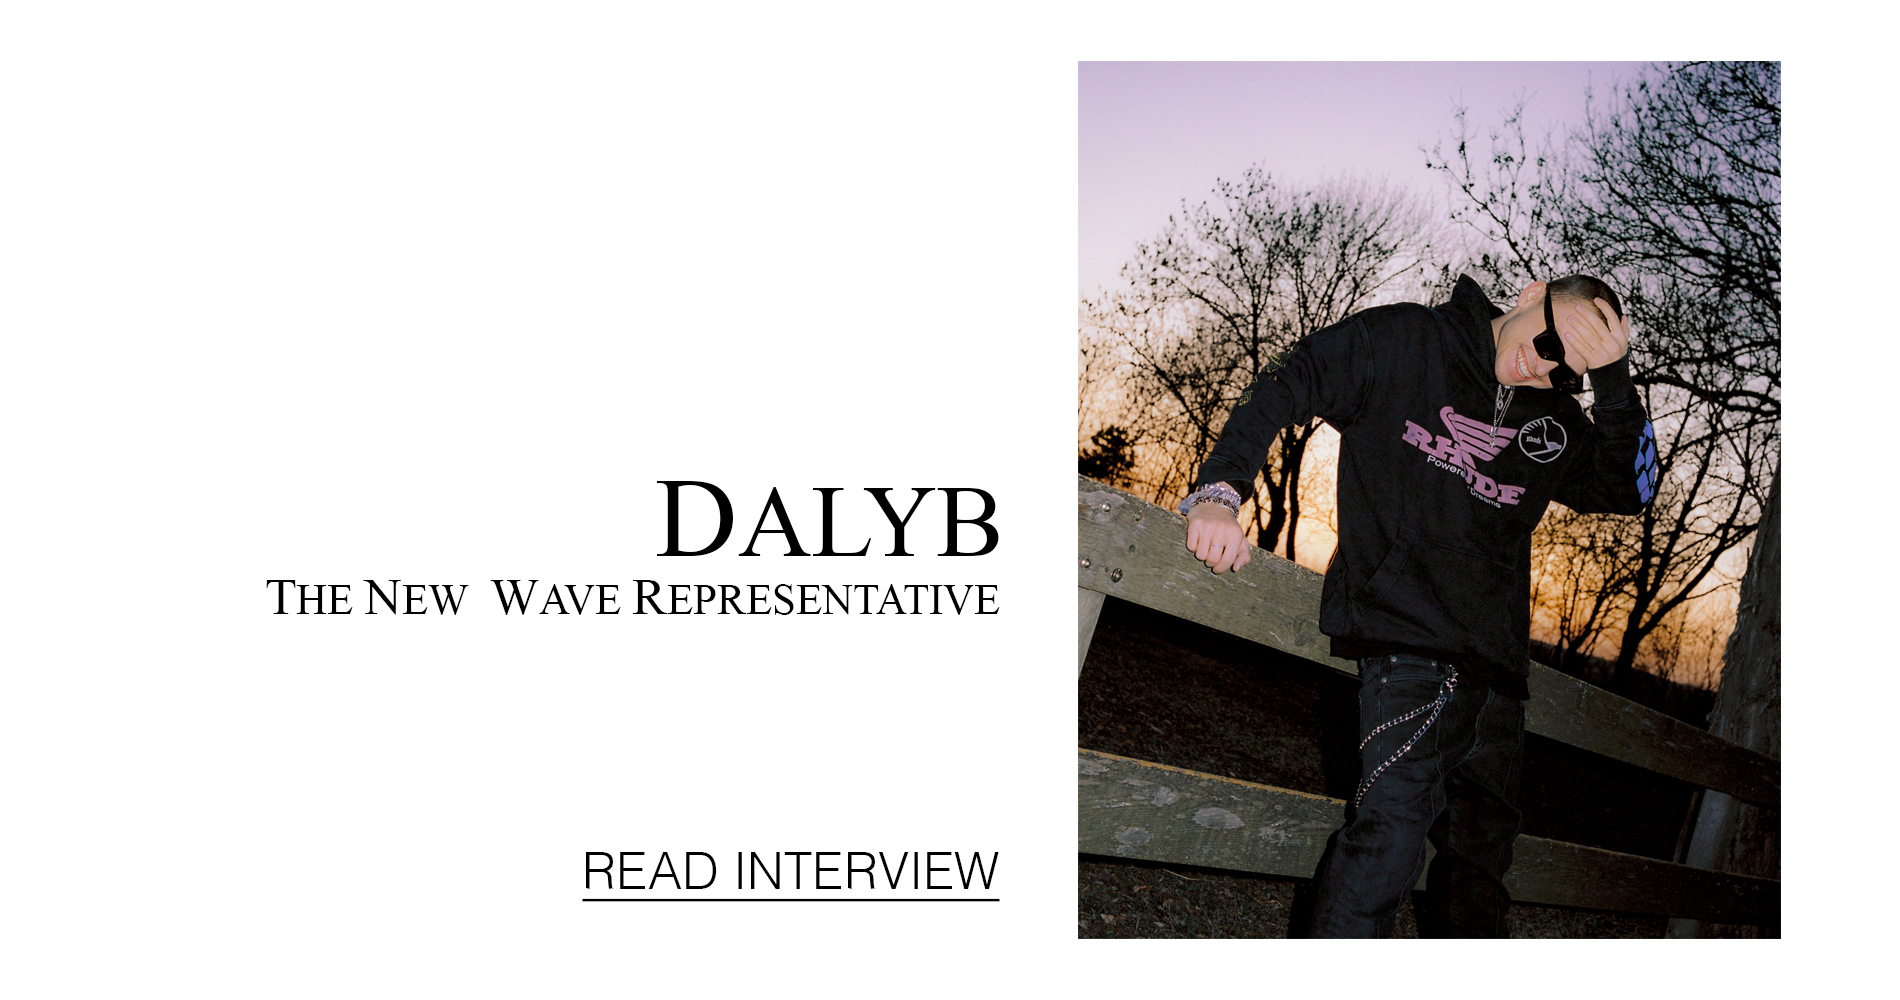 https://shatle.com/sk/blog/168-dalyb-the-new-wave-representative